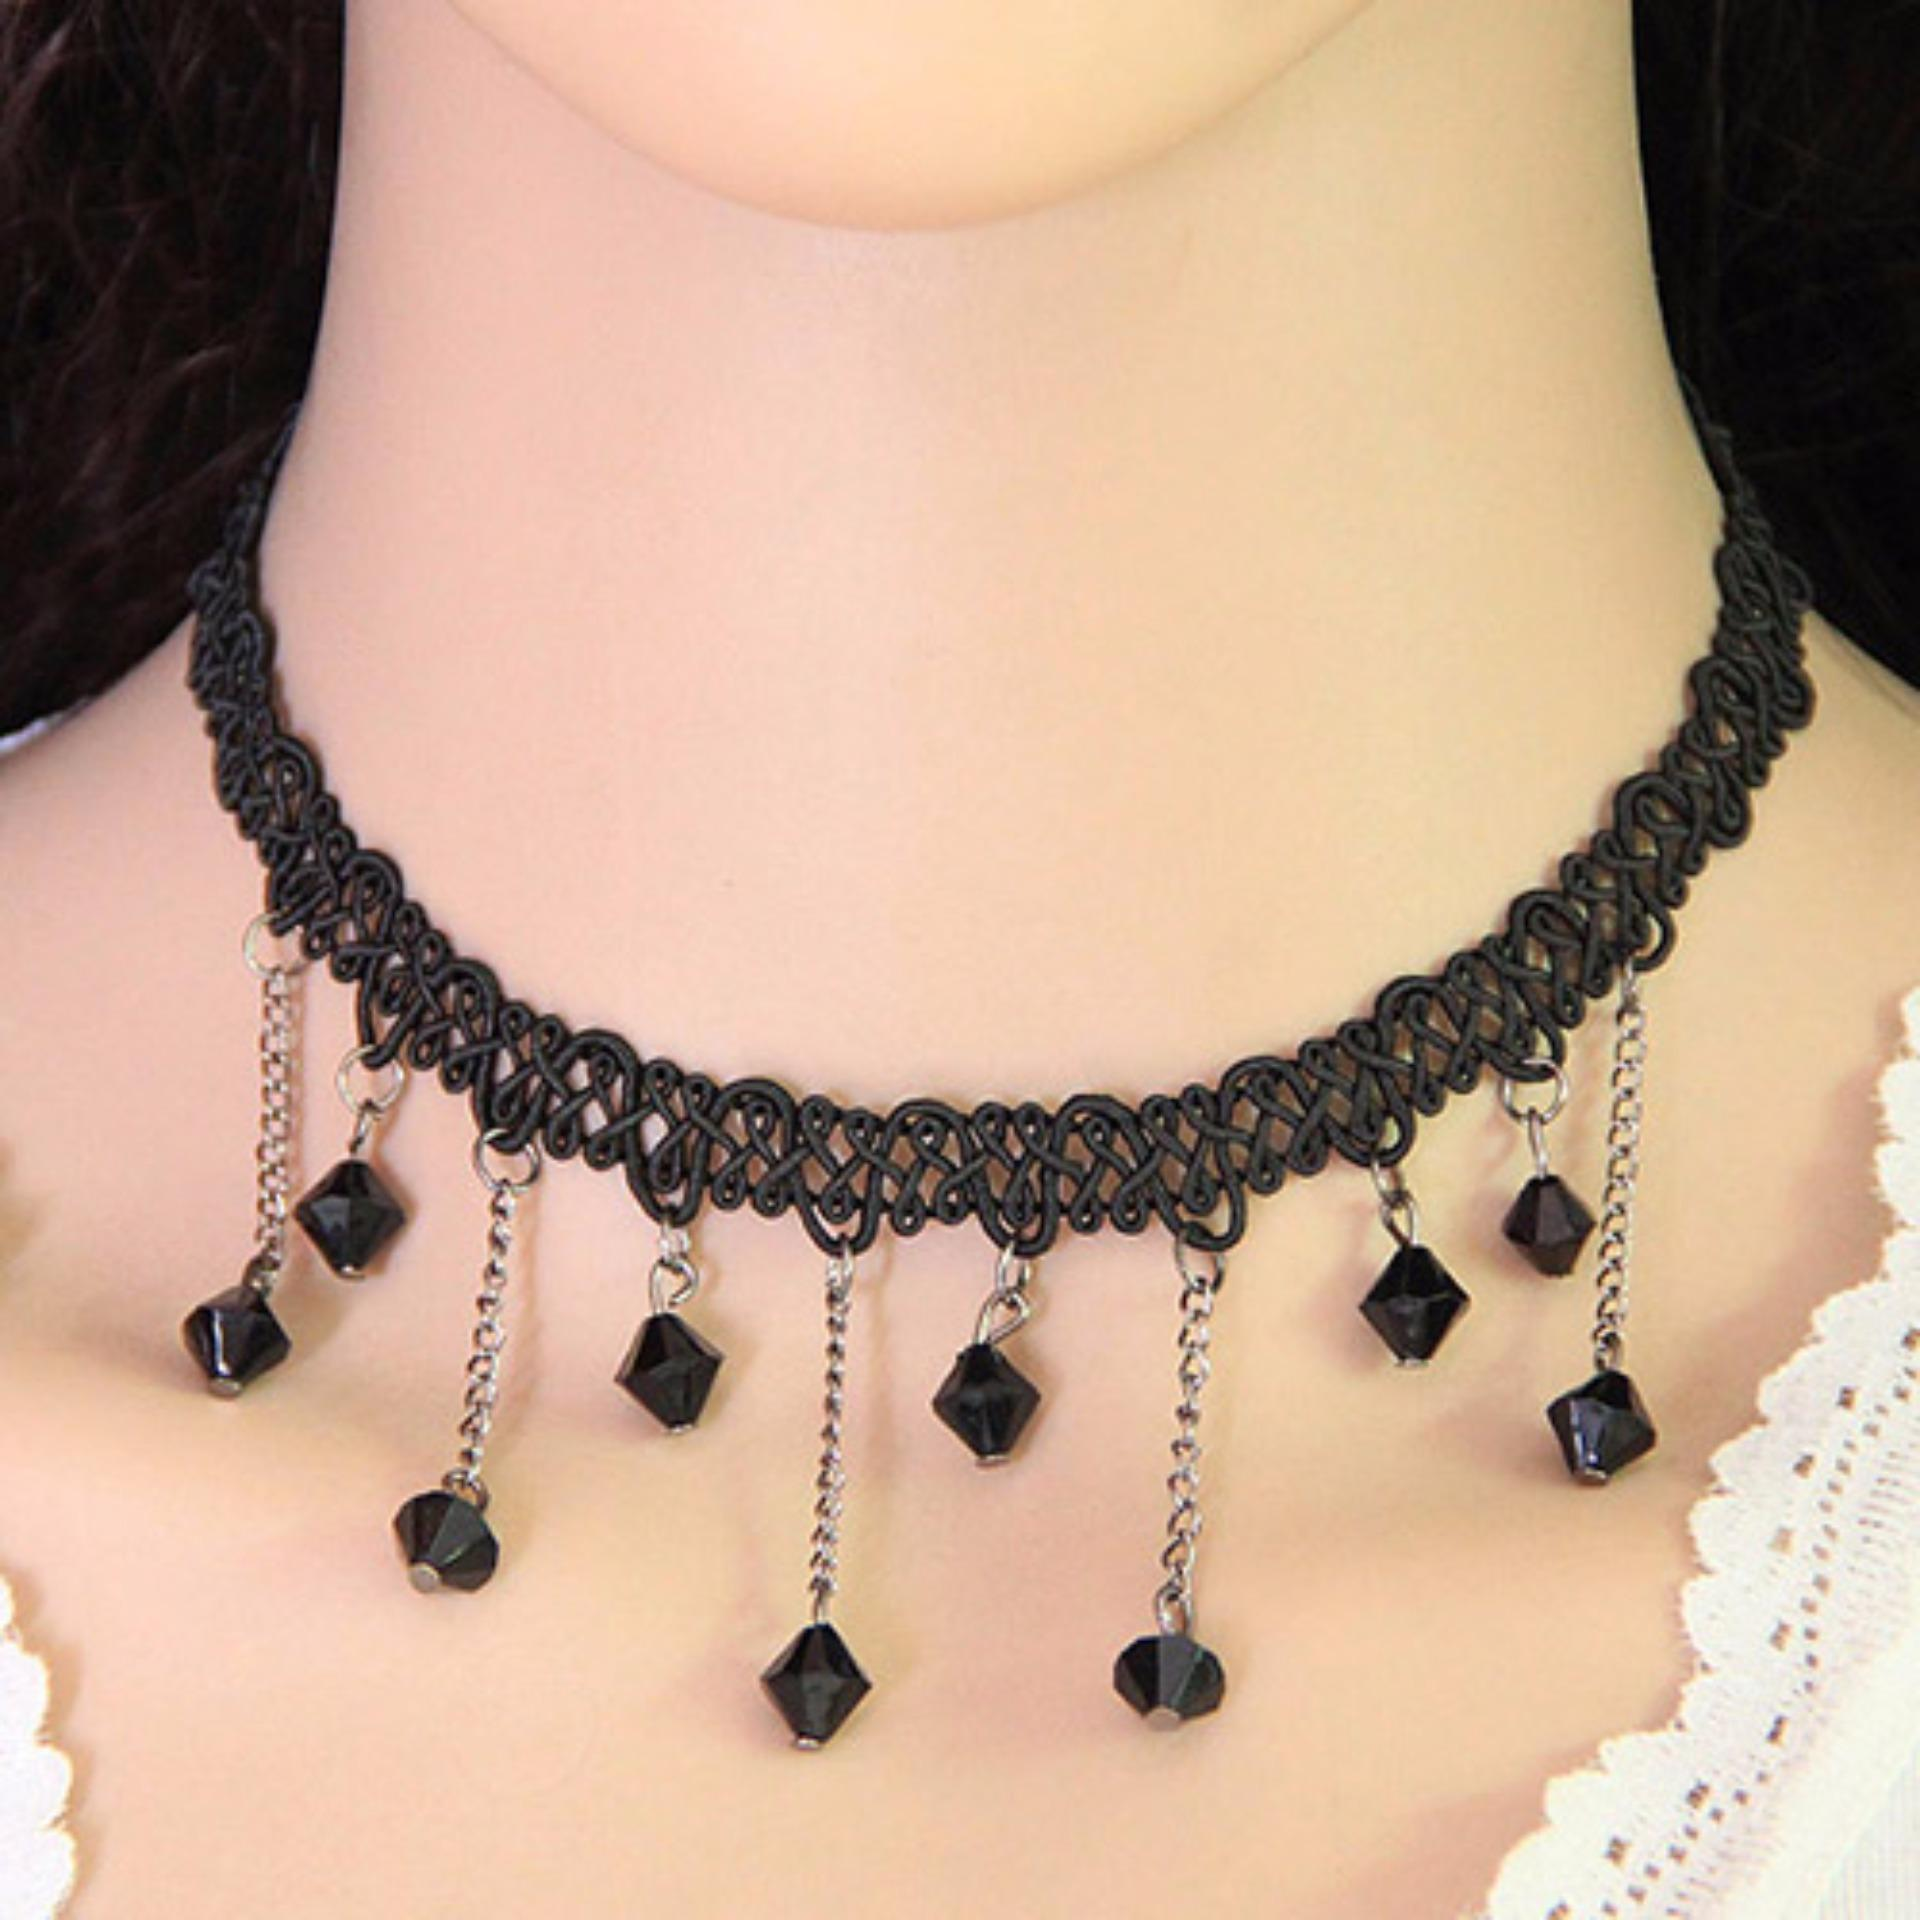 ... Hand Woven Simple Source · LRC Kalung Wanita Elegant Black Beads Tassel Pendant Decorated Weaving Chain Design